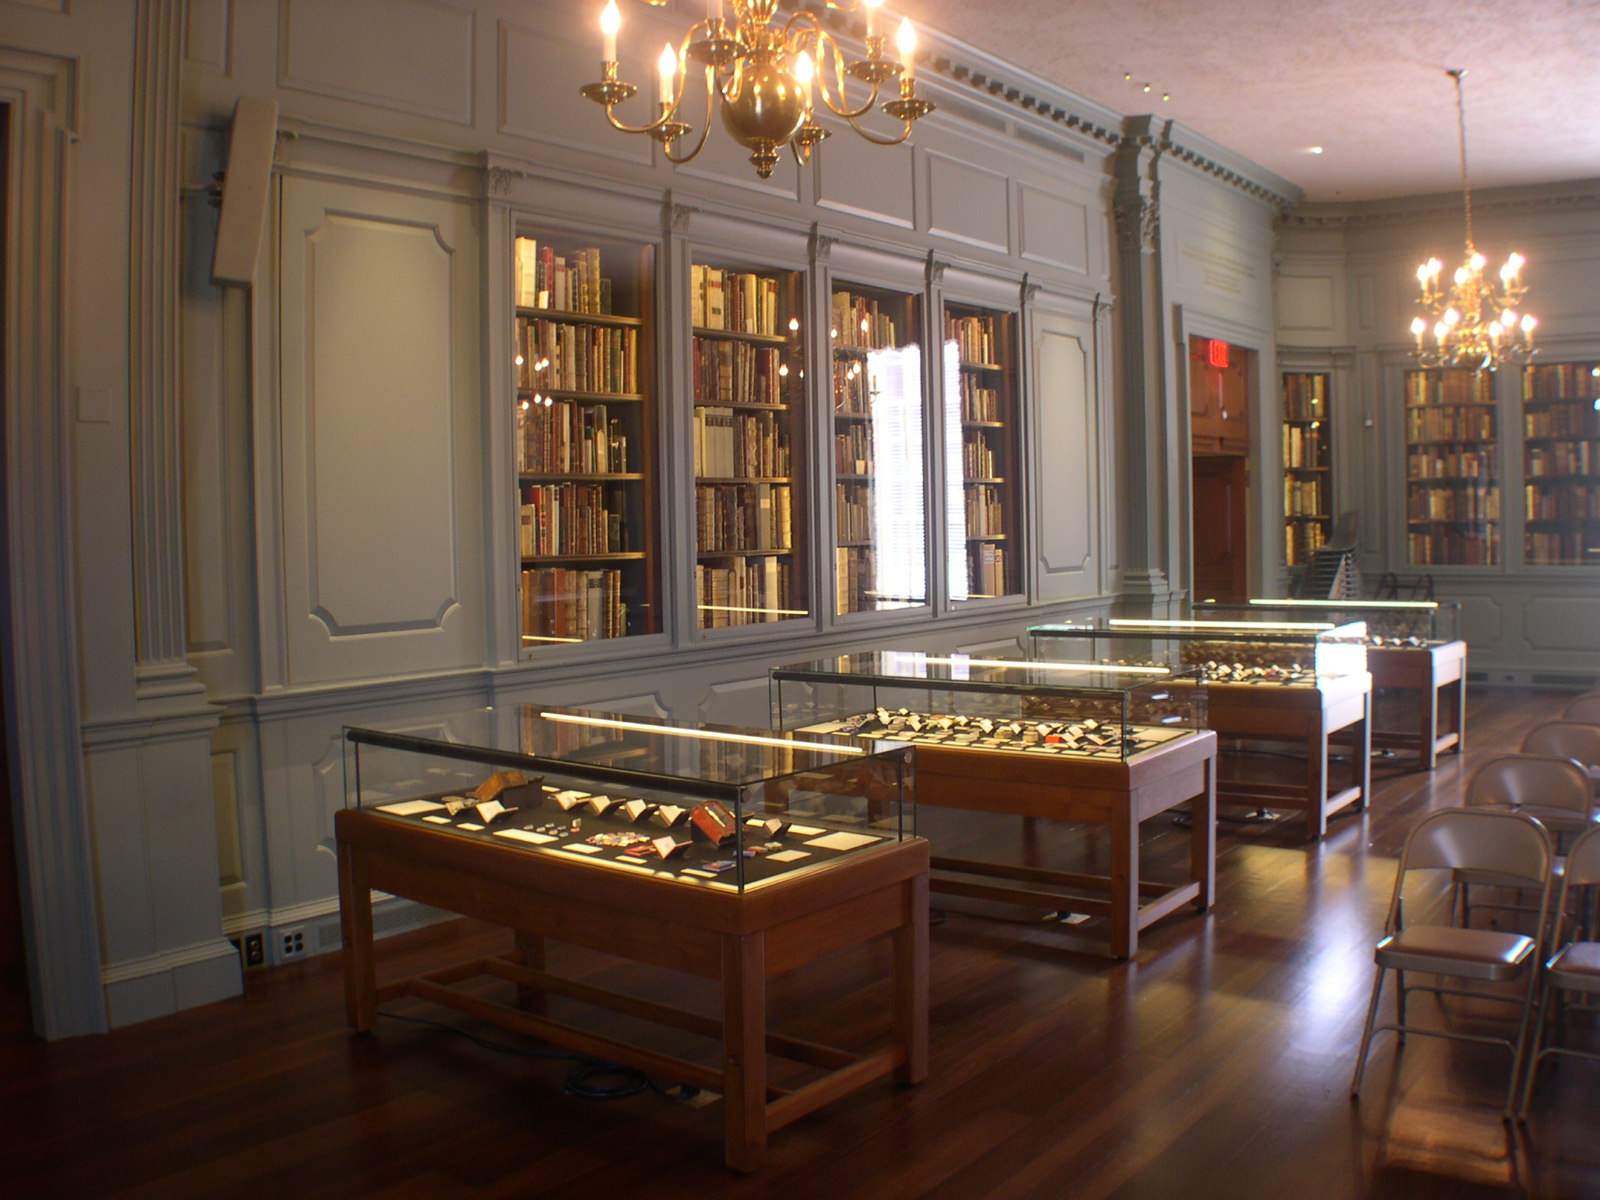 Rare Books Library